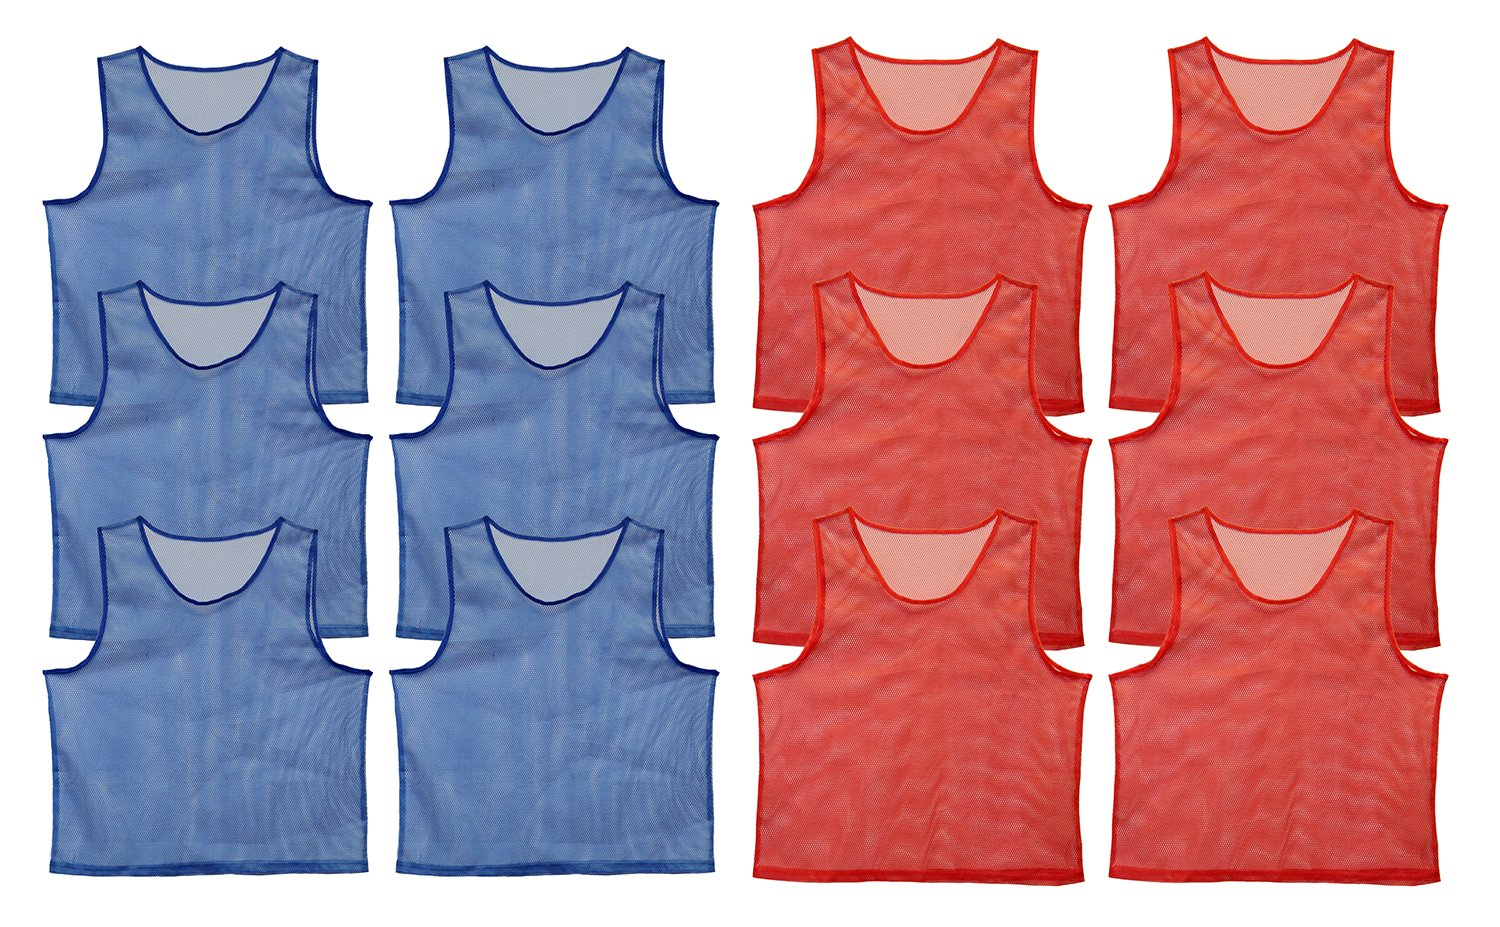 new products 19e1f c1901 Get Out! Scrimmage Vest Pinnies 12pk in Red and Blue – Youth, Teens and  Adult Sizes – Nylon Mesh Jerseys for Any Sport